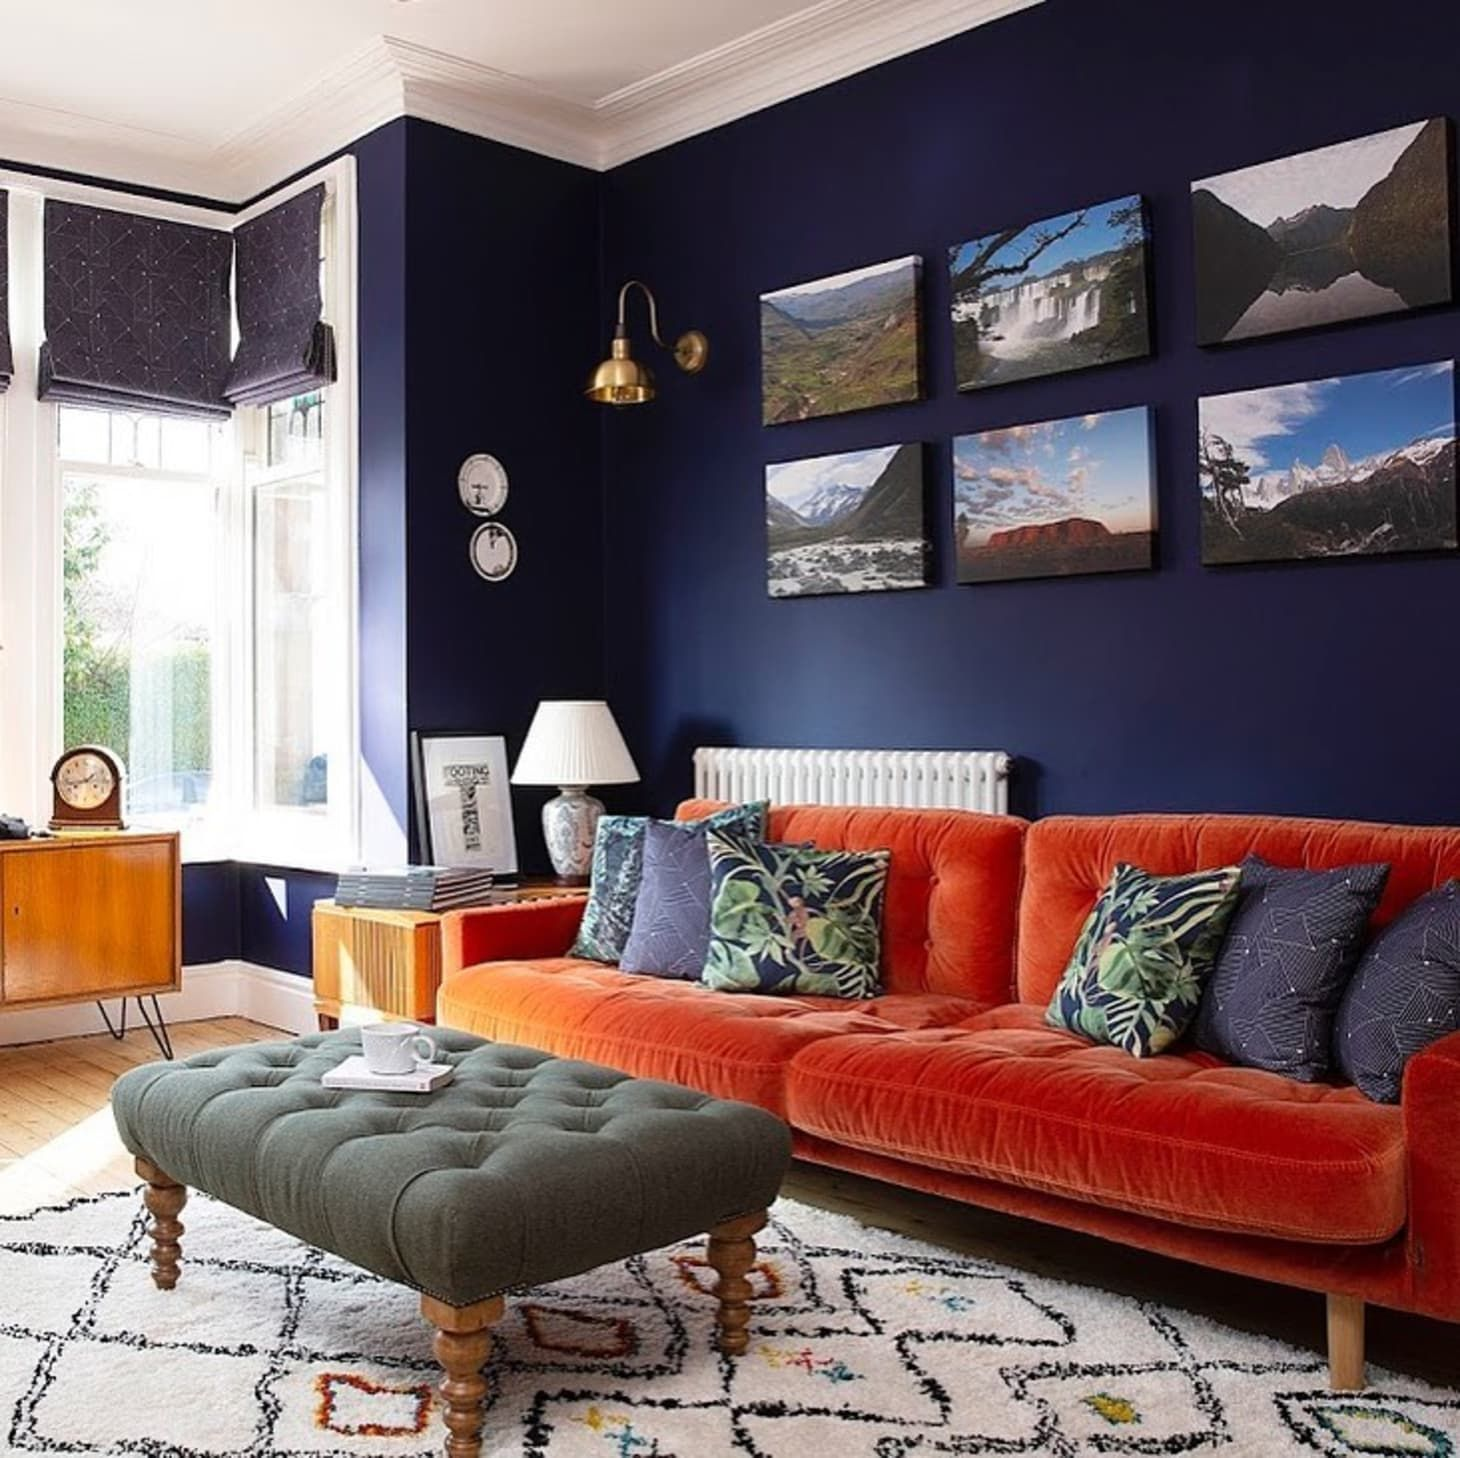 Orange Is The New Blue At Least When It Comes To Living Room Sofas Living Room Orange Orange Sofa Blue And Orange Living Room Blue orange living room